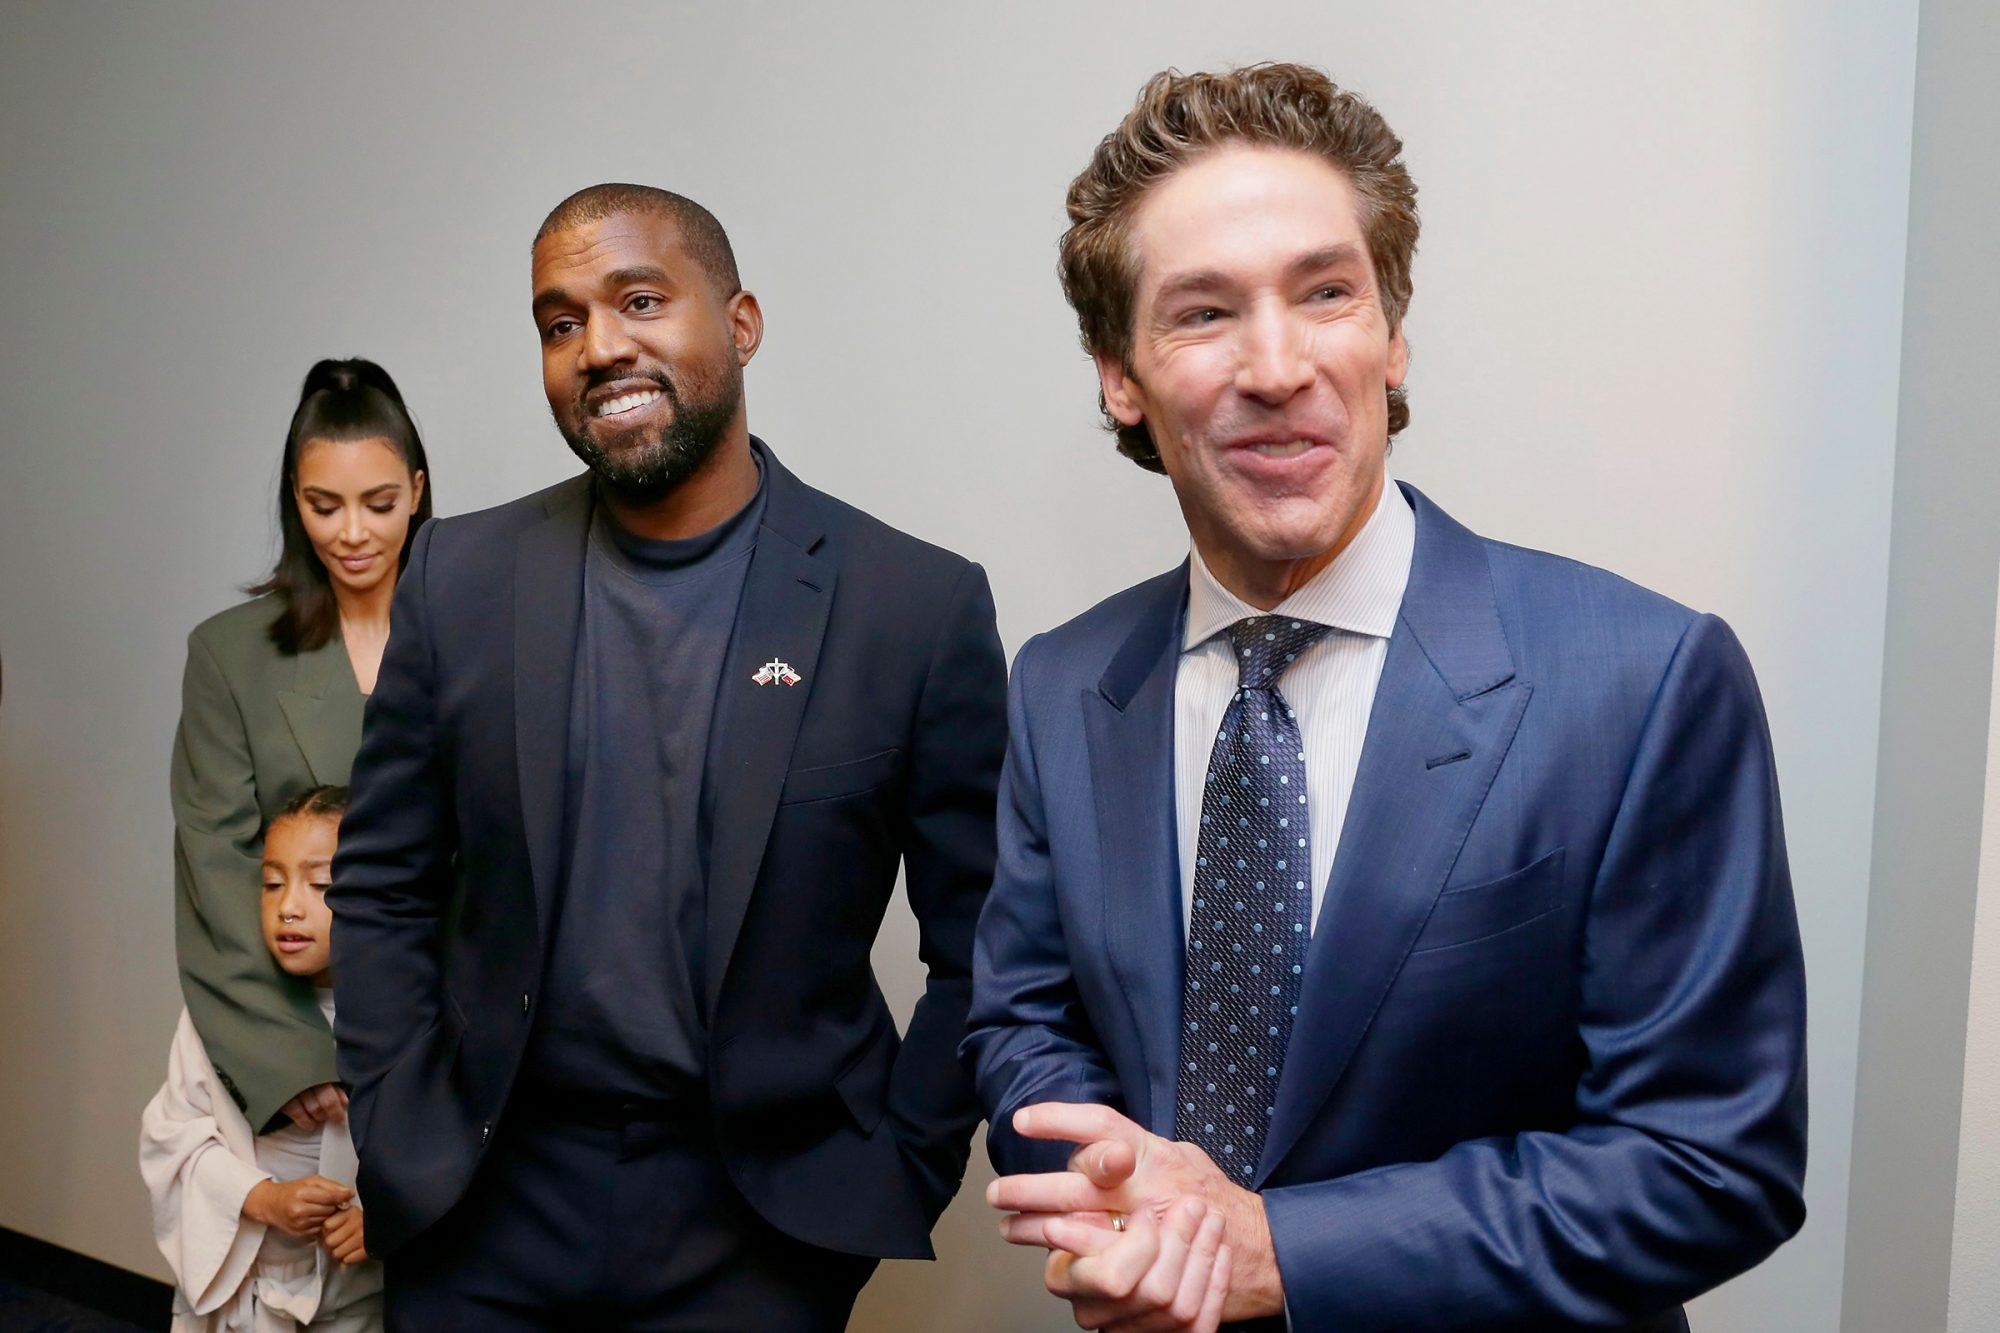 From left, Kim Kardashian West, North West, Kanye West and Sr. Pastor Joel Osteen answers media question after the 11 am service at Lakewood Church, in Houston Lakewood Church's 11am service, Houston, USA - 17 Nov 2019